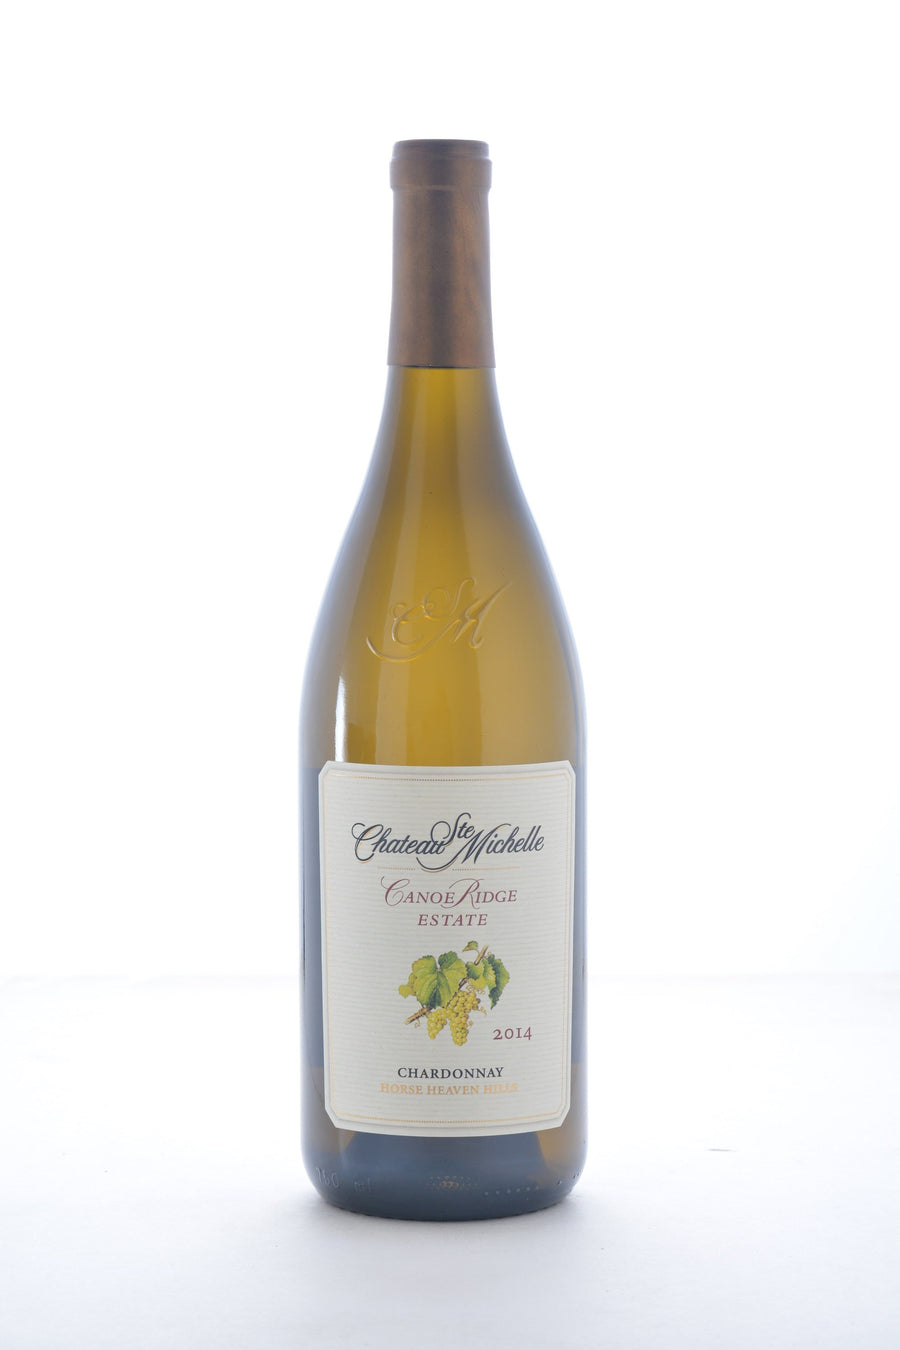 Chateau Ste. Michelle Chardonnay Canoe Ridge 2014 - 750 ML